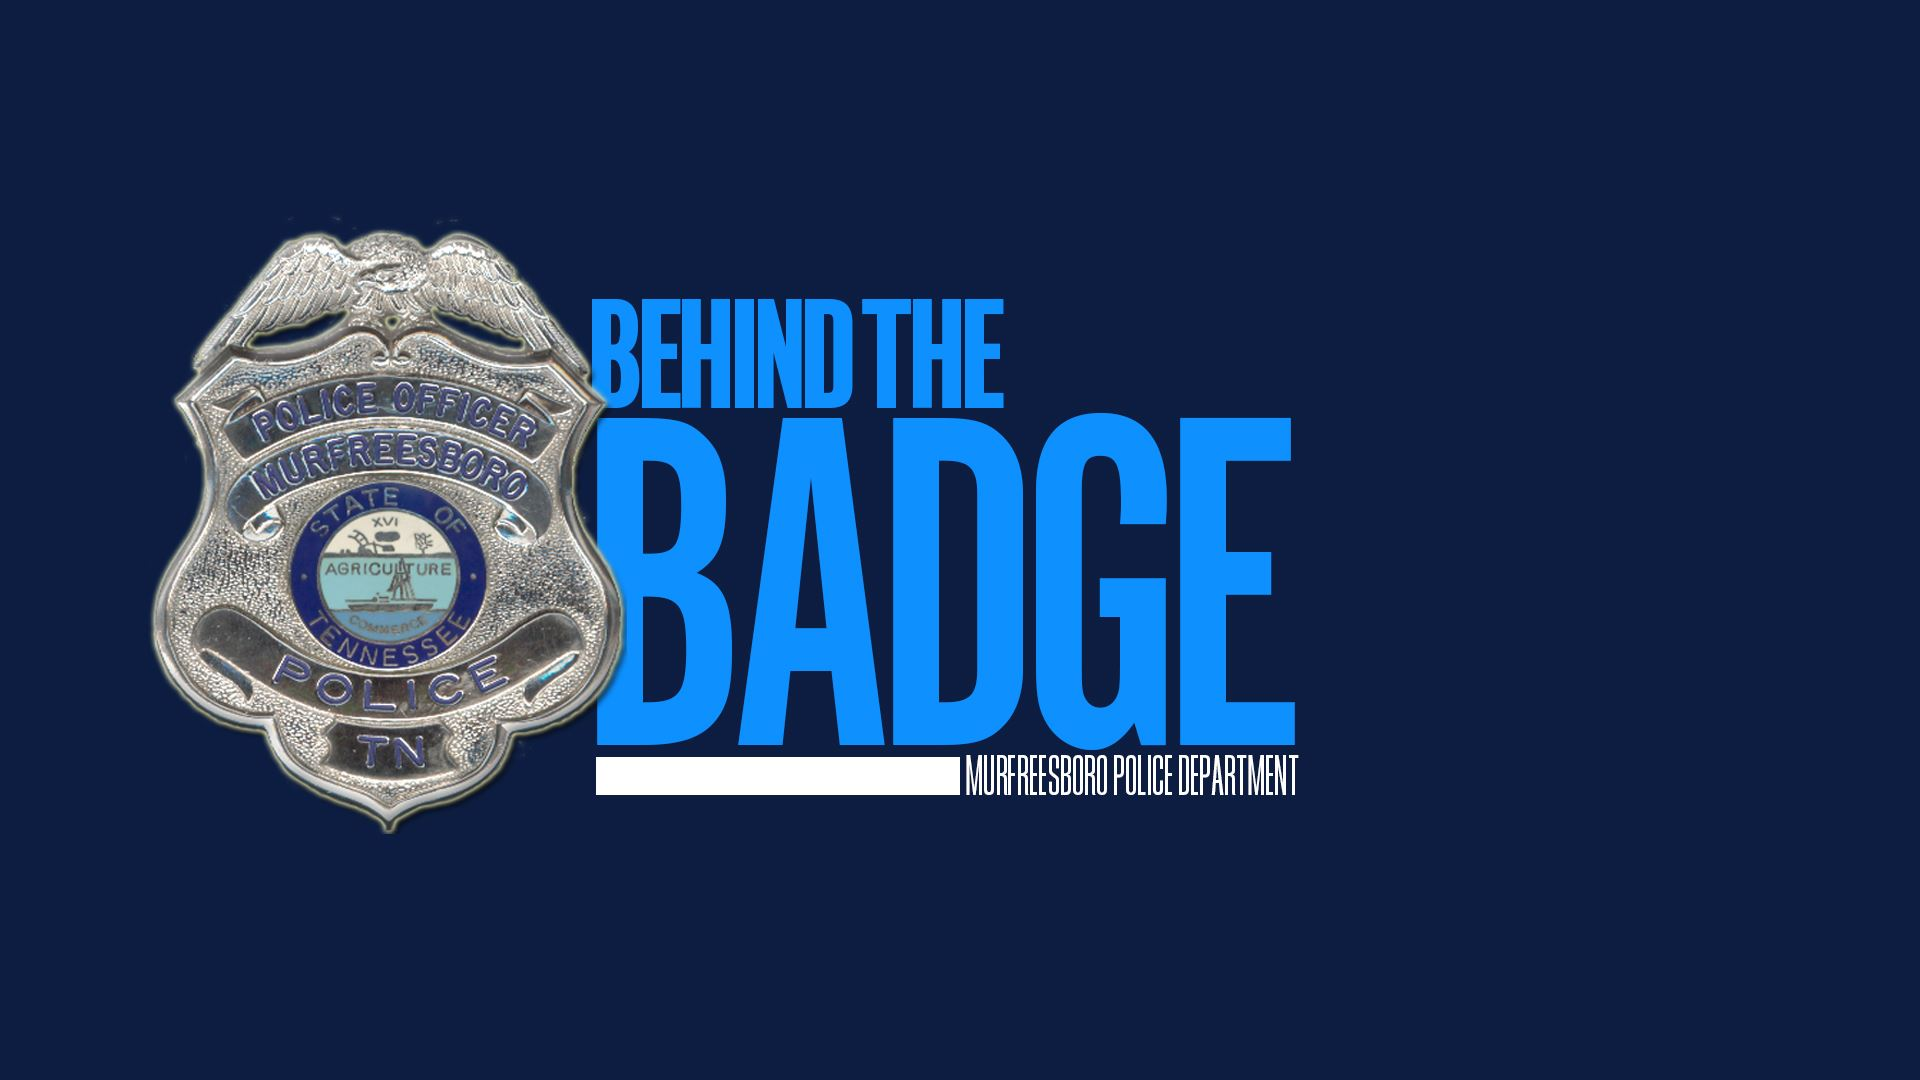 BEHIND THE BADGE 4